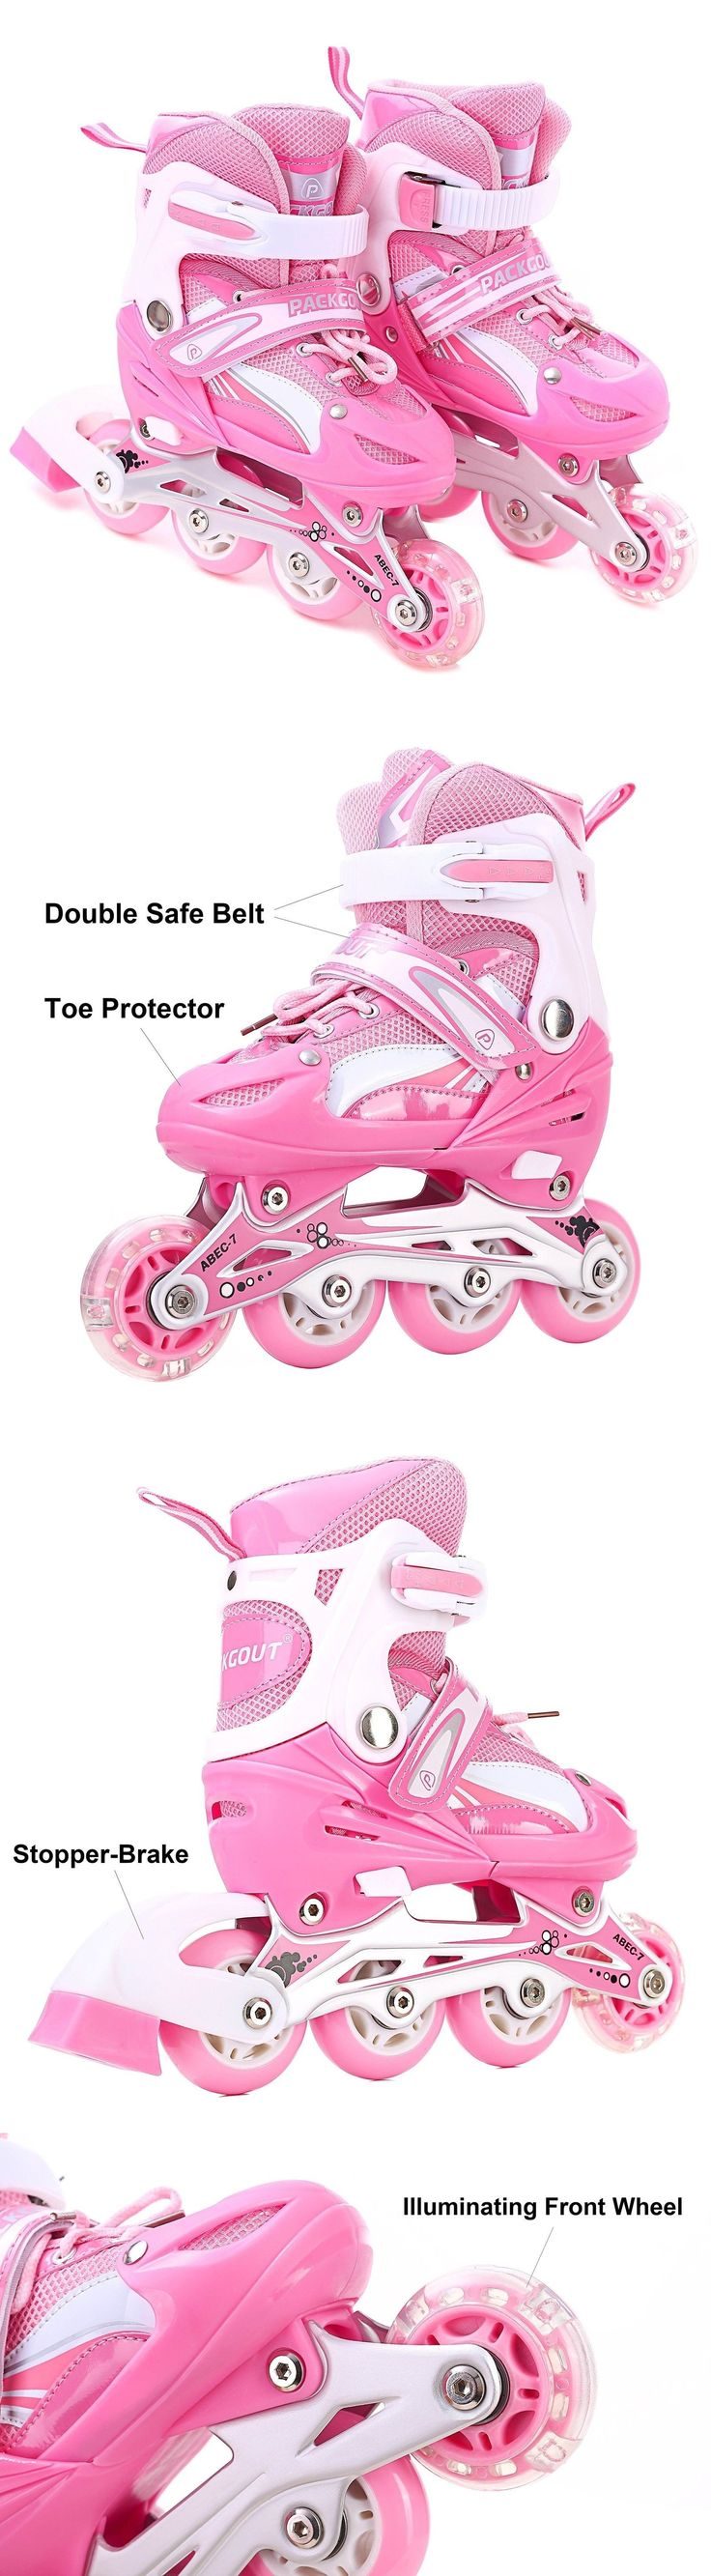 Youth 47345: Girls Inline Skates Adjustable Rollerblades For Kids Girls With Illuminating ... -> BUY IT NOW ONLY: $44.56 on eBay!